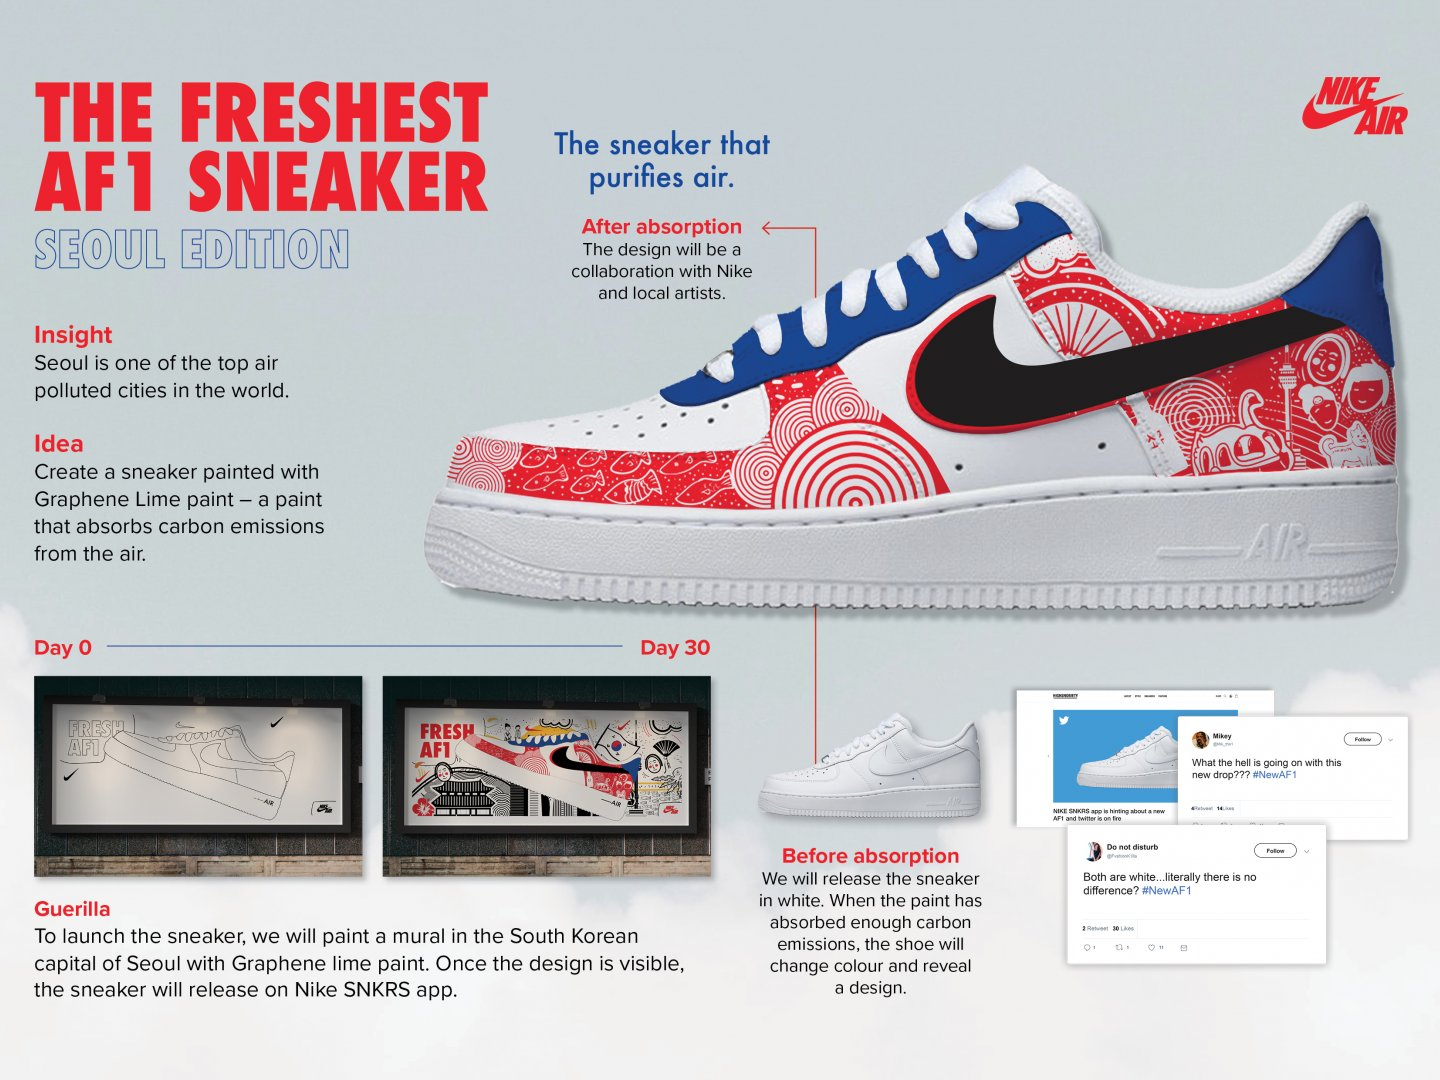 The Freshest AF1 Sneaker Thumbnail